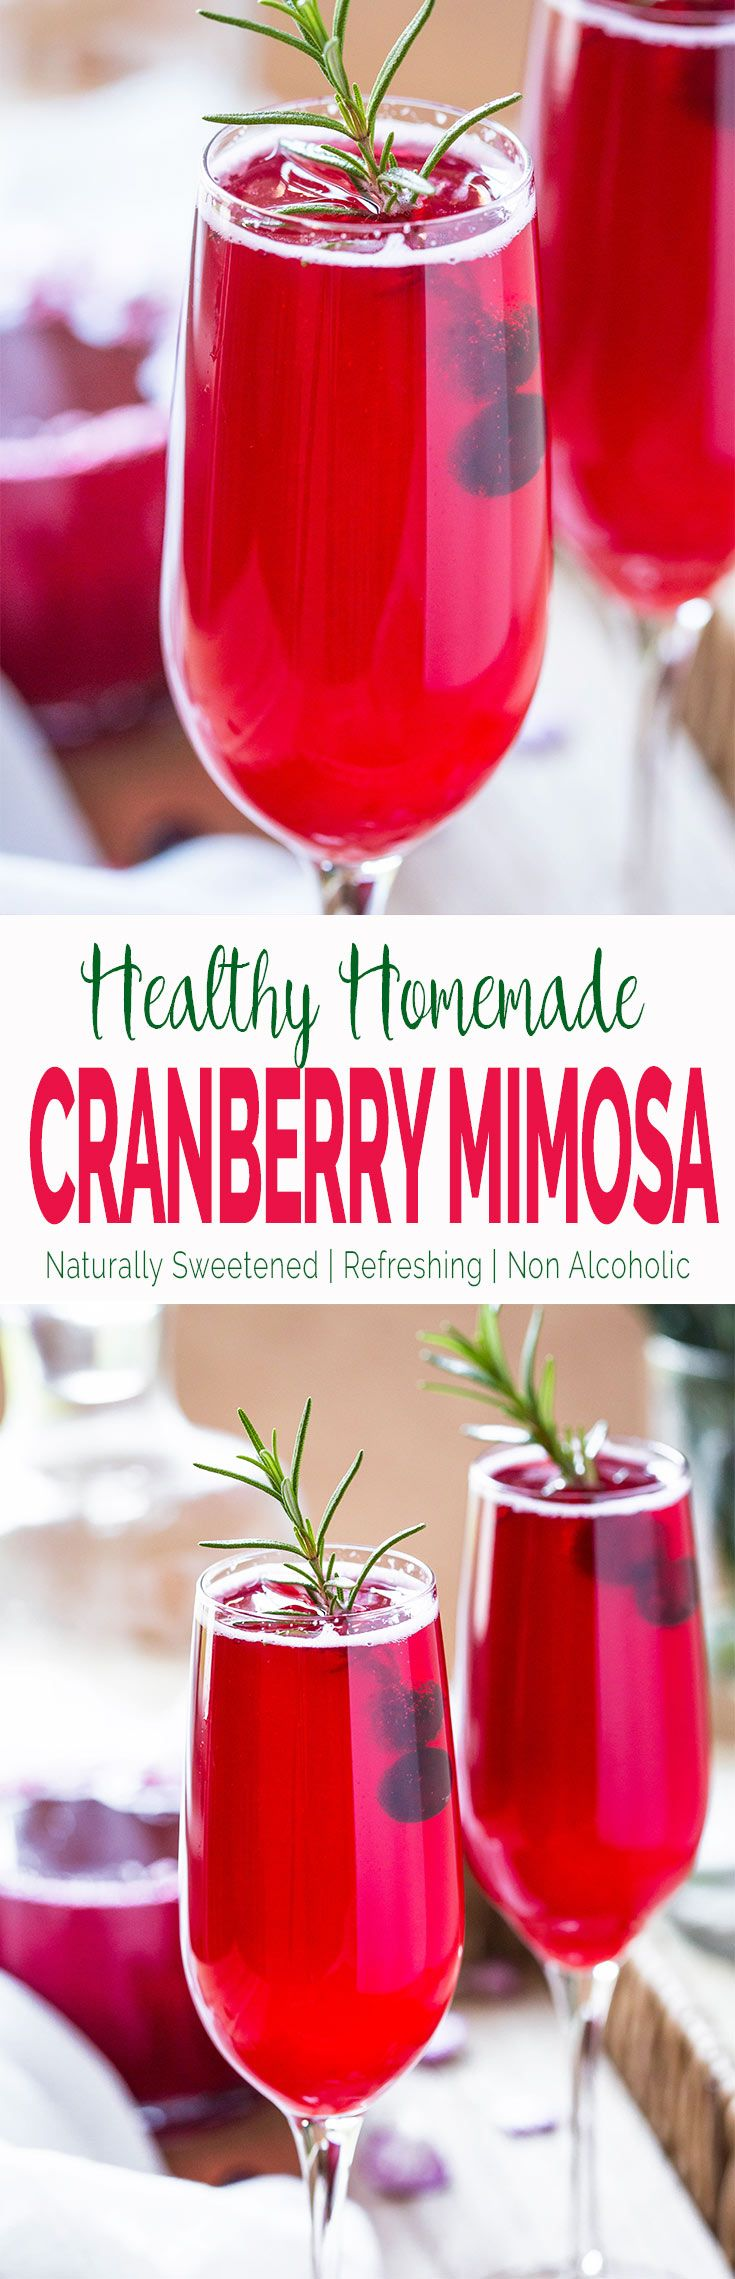 This cranberry mimosa recipe calls for freshly made homemade cranberry juice. It is healthy, naturally sweetened, kids friendly that the entire family can enjoy. | #nonalcoholic #cranberry #mimosa #thanksgivingdrinks  via @watchwhatueat